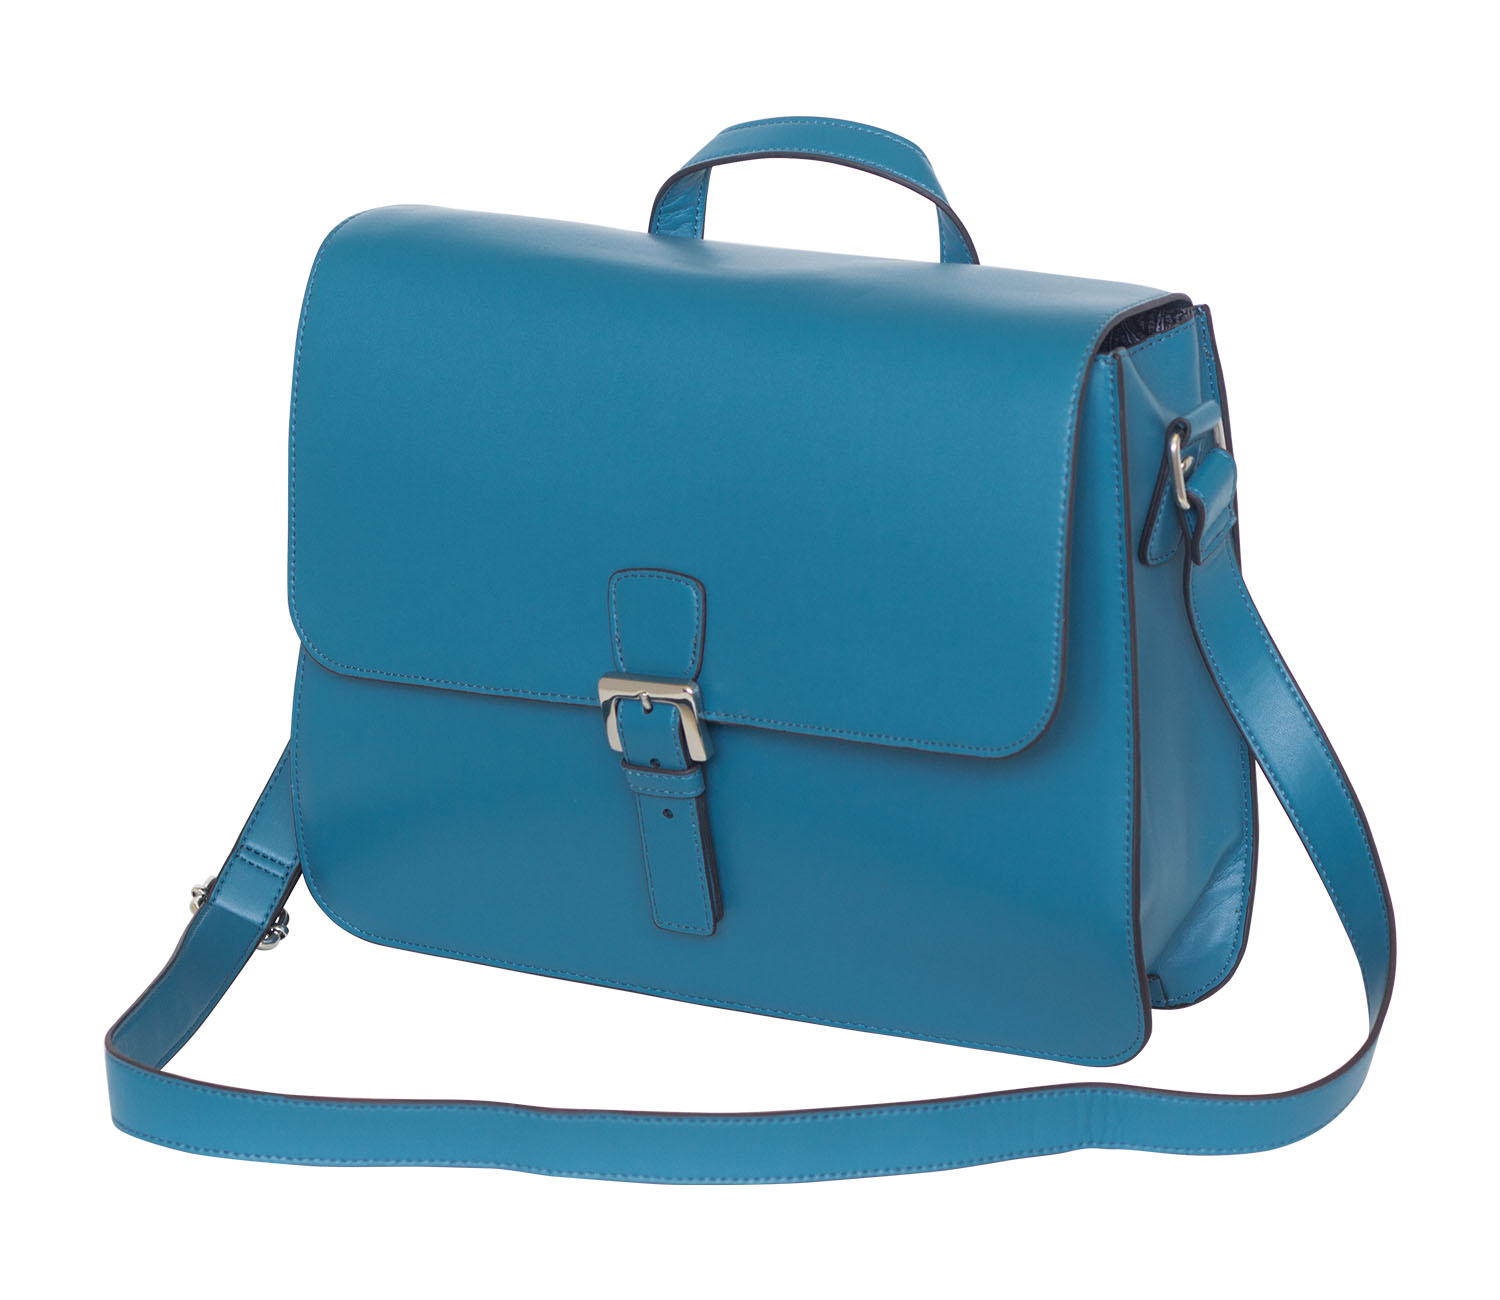 Offex Women's Lily Blue Mini Messenger Bag